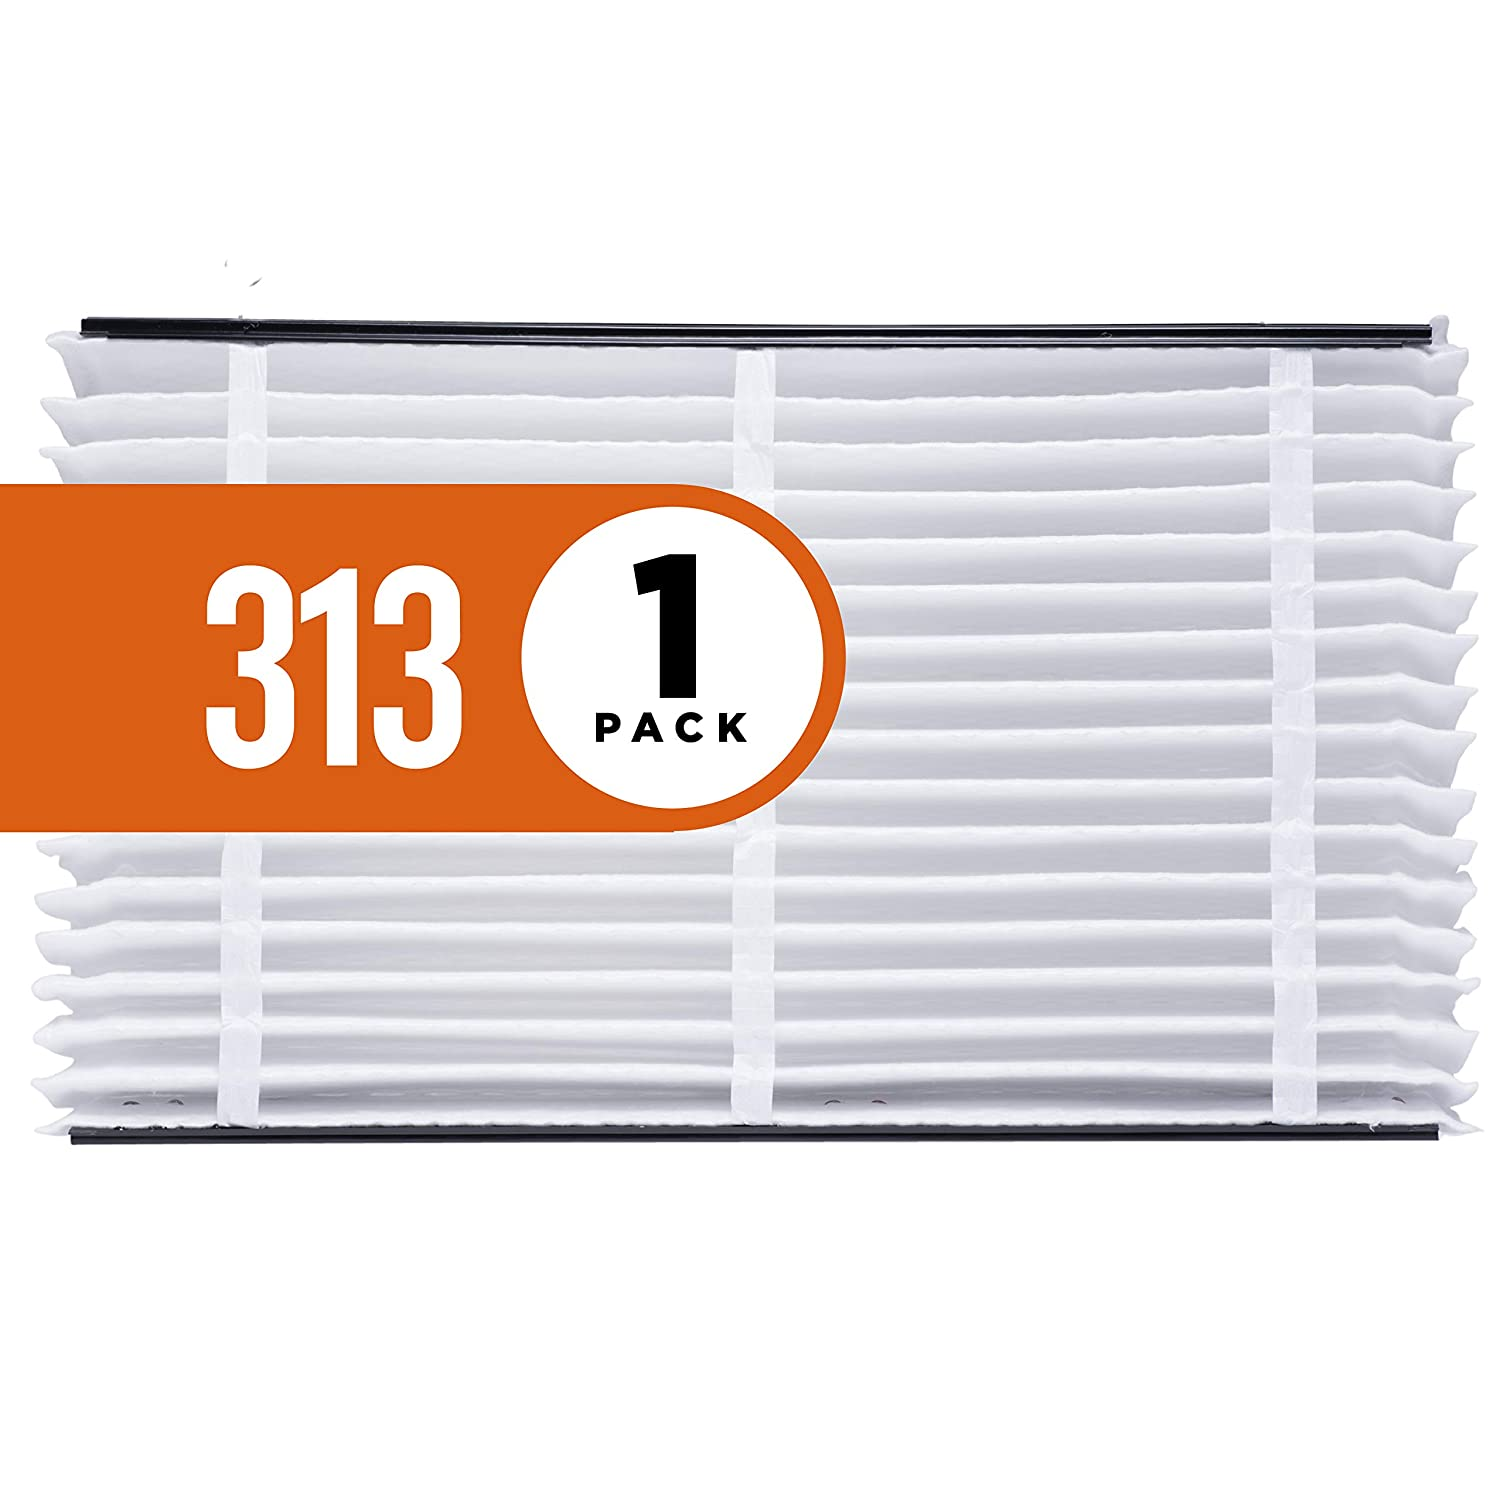 Aprilaire 313 Air Filter for Aprilaire Whole Home Air Purifiers, MERV 13 (Pack of 1)